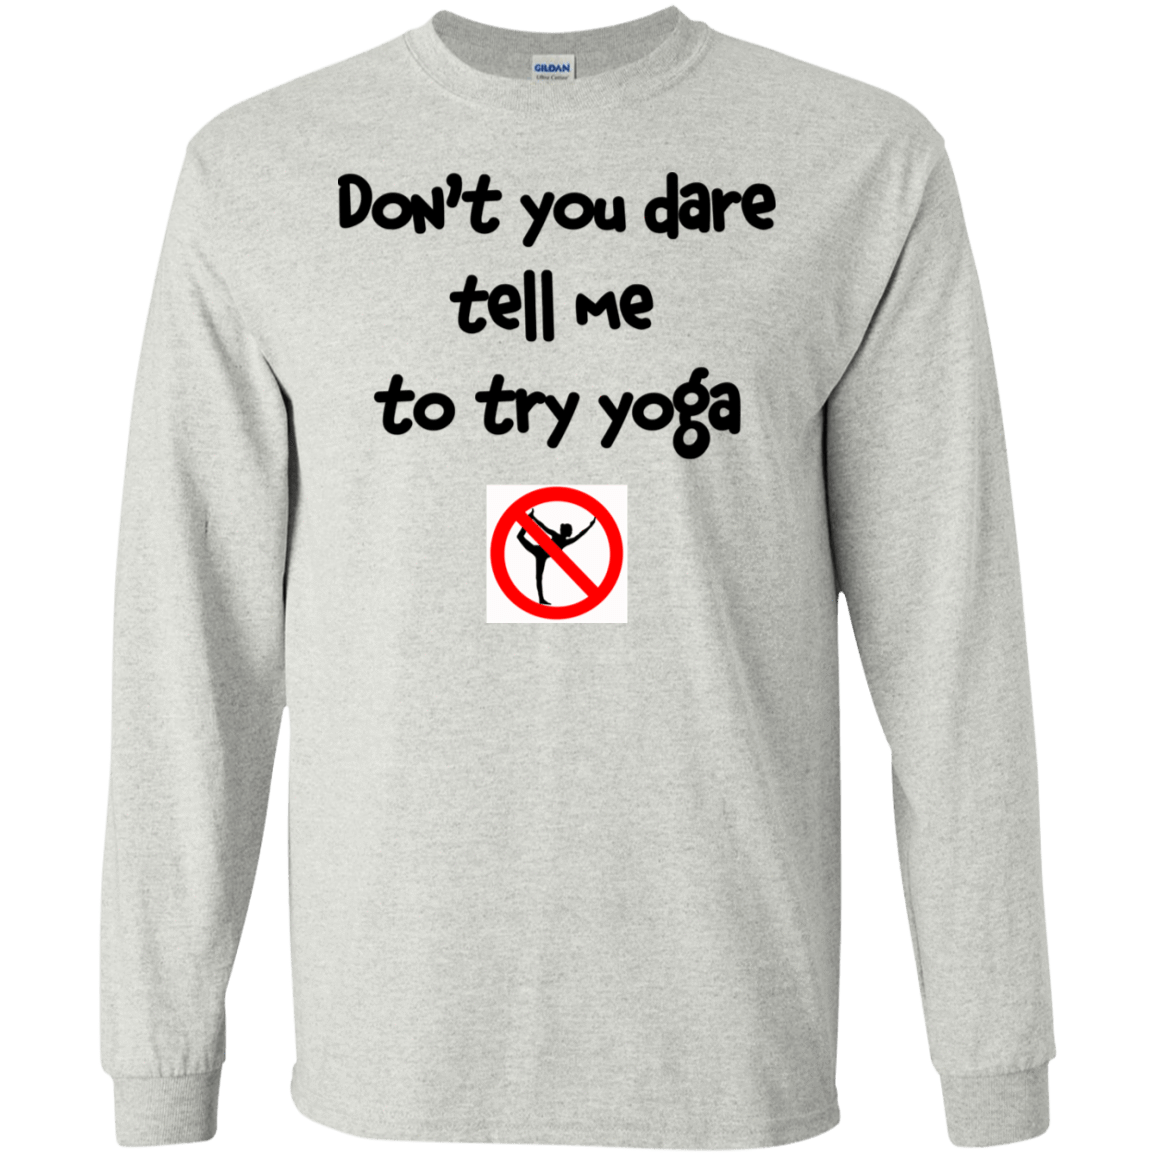 Don't You Dare Tell Me To Try Yoga 30-2112-73056939-10754 - Tee Ript